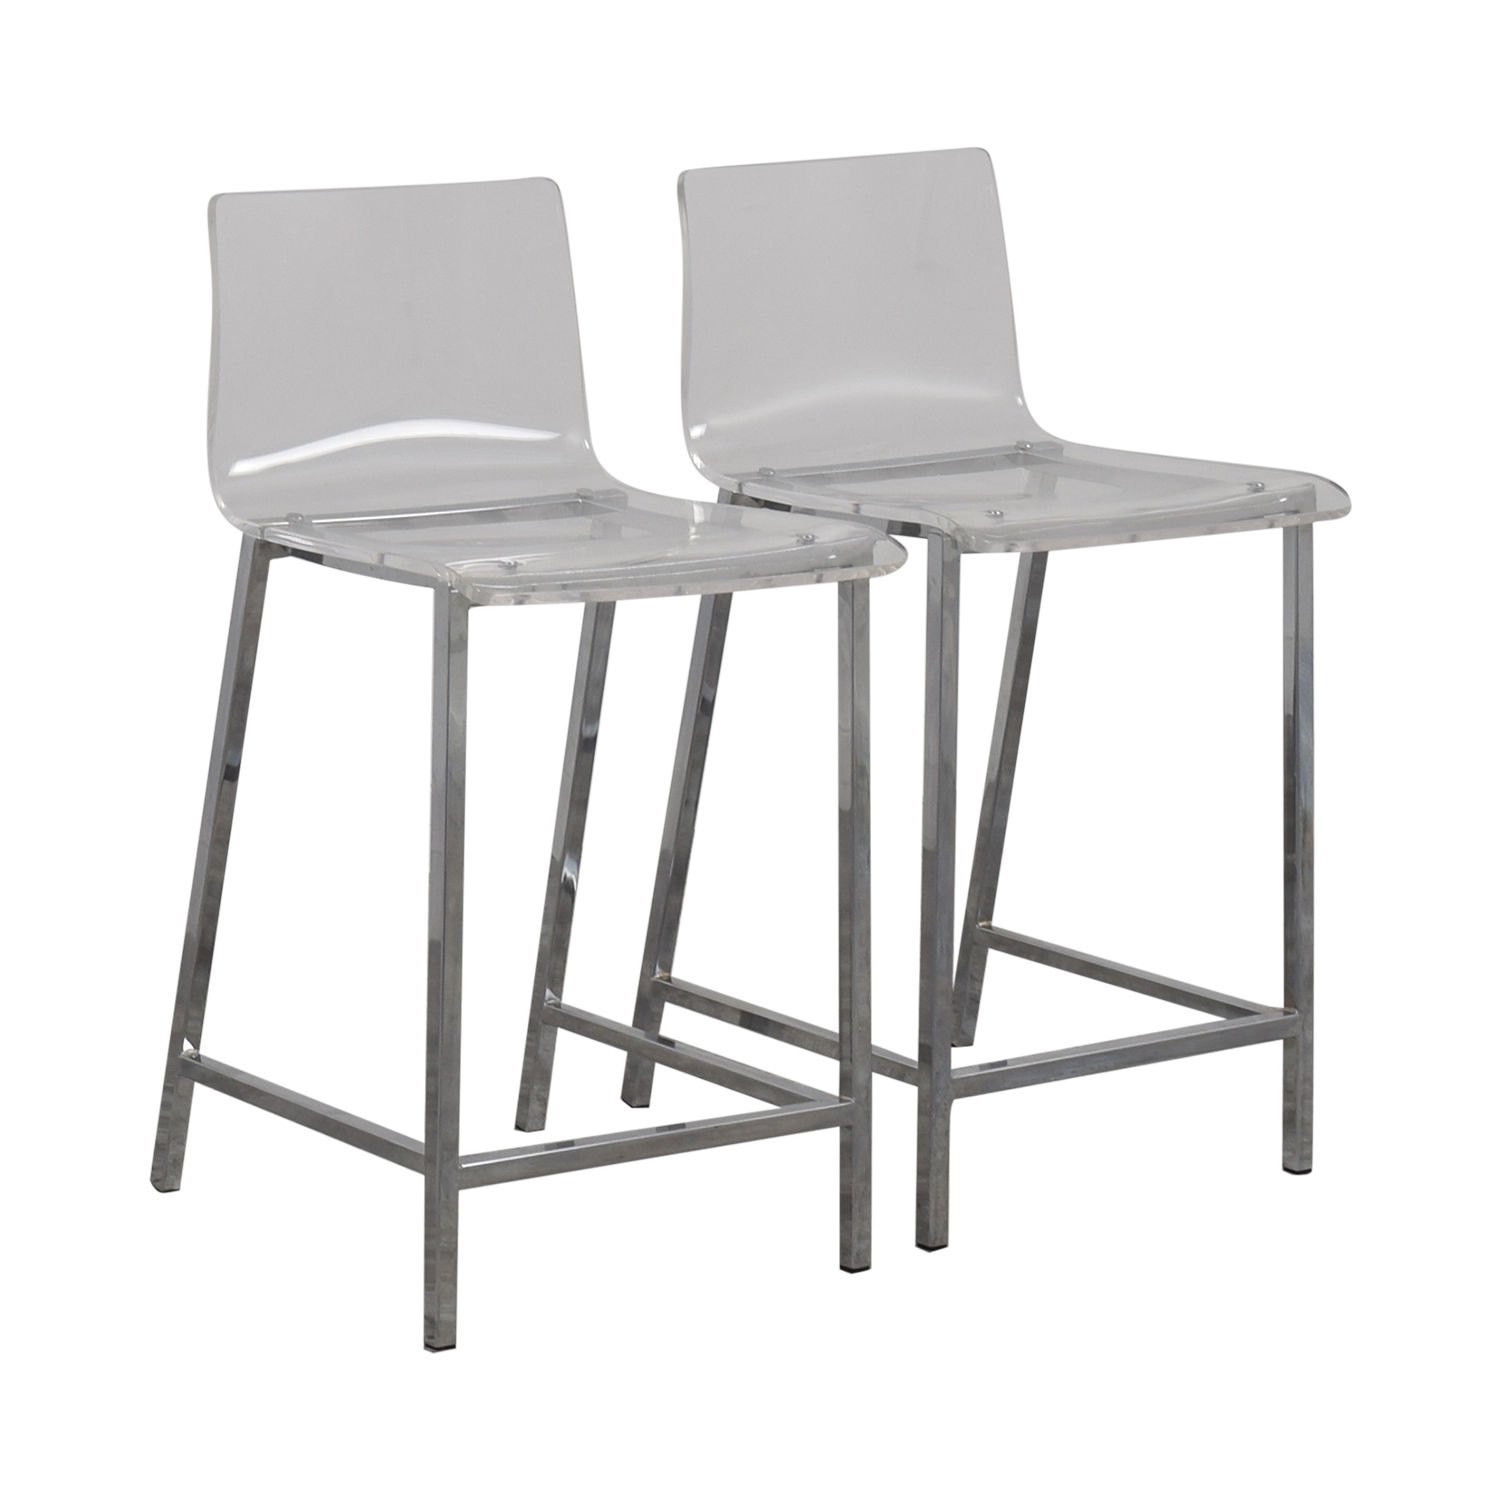 shop CB2 Clear Acrylic Bar Stools CB2 Chairs